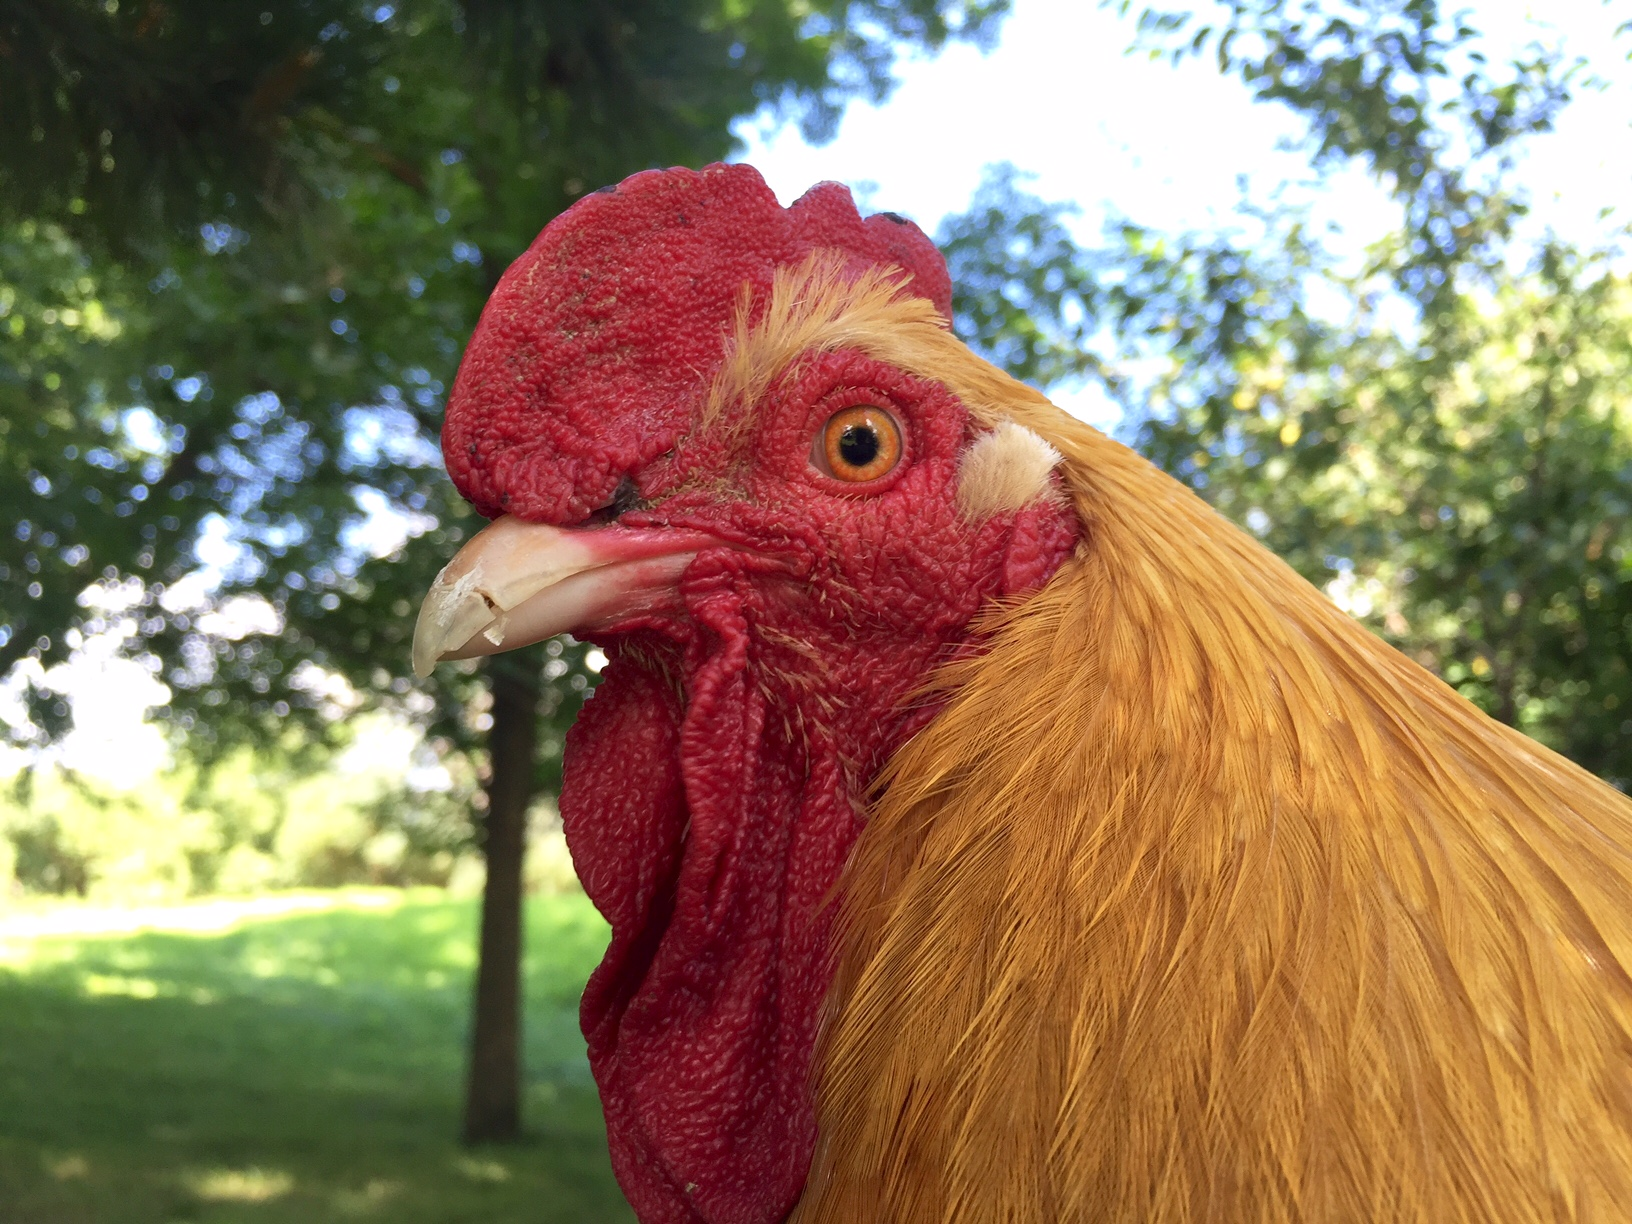 Bolivar rooster, Super Gluing a Broken Chicken Beak, or...How I Became a Crazy Chicken Lady | Whole-Fed Homestead